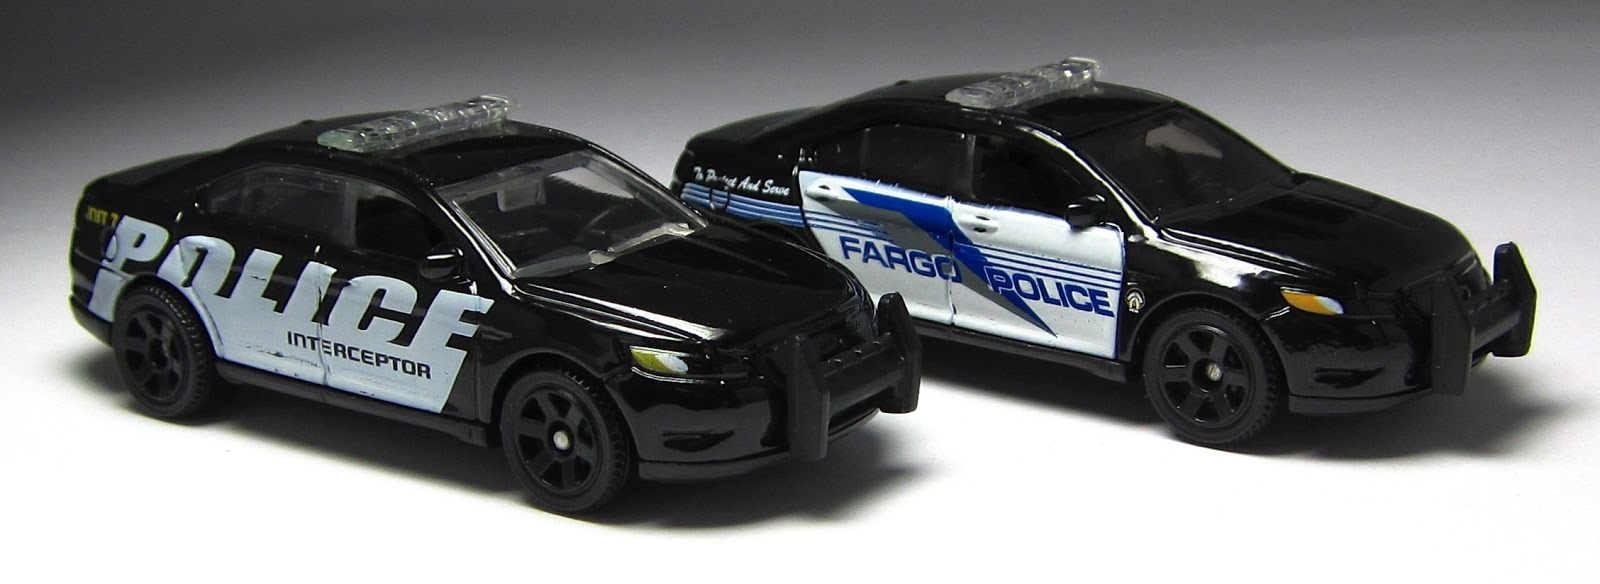 2014 Matchbox Heroic Rescue Ford Police Interceptor Dark ...